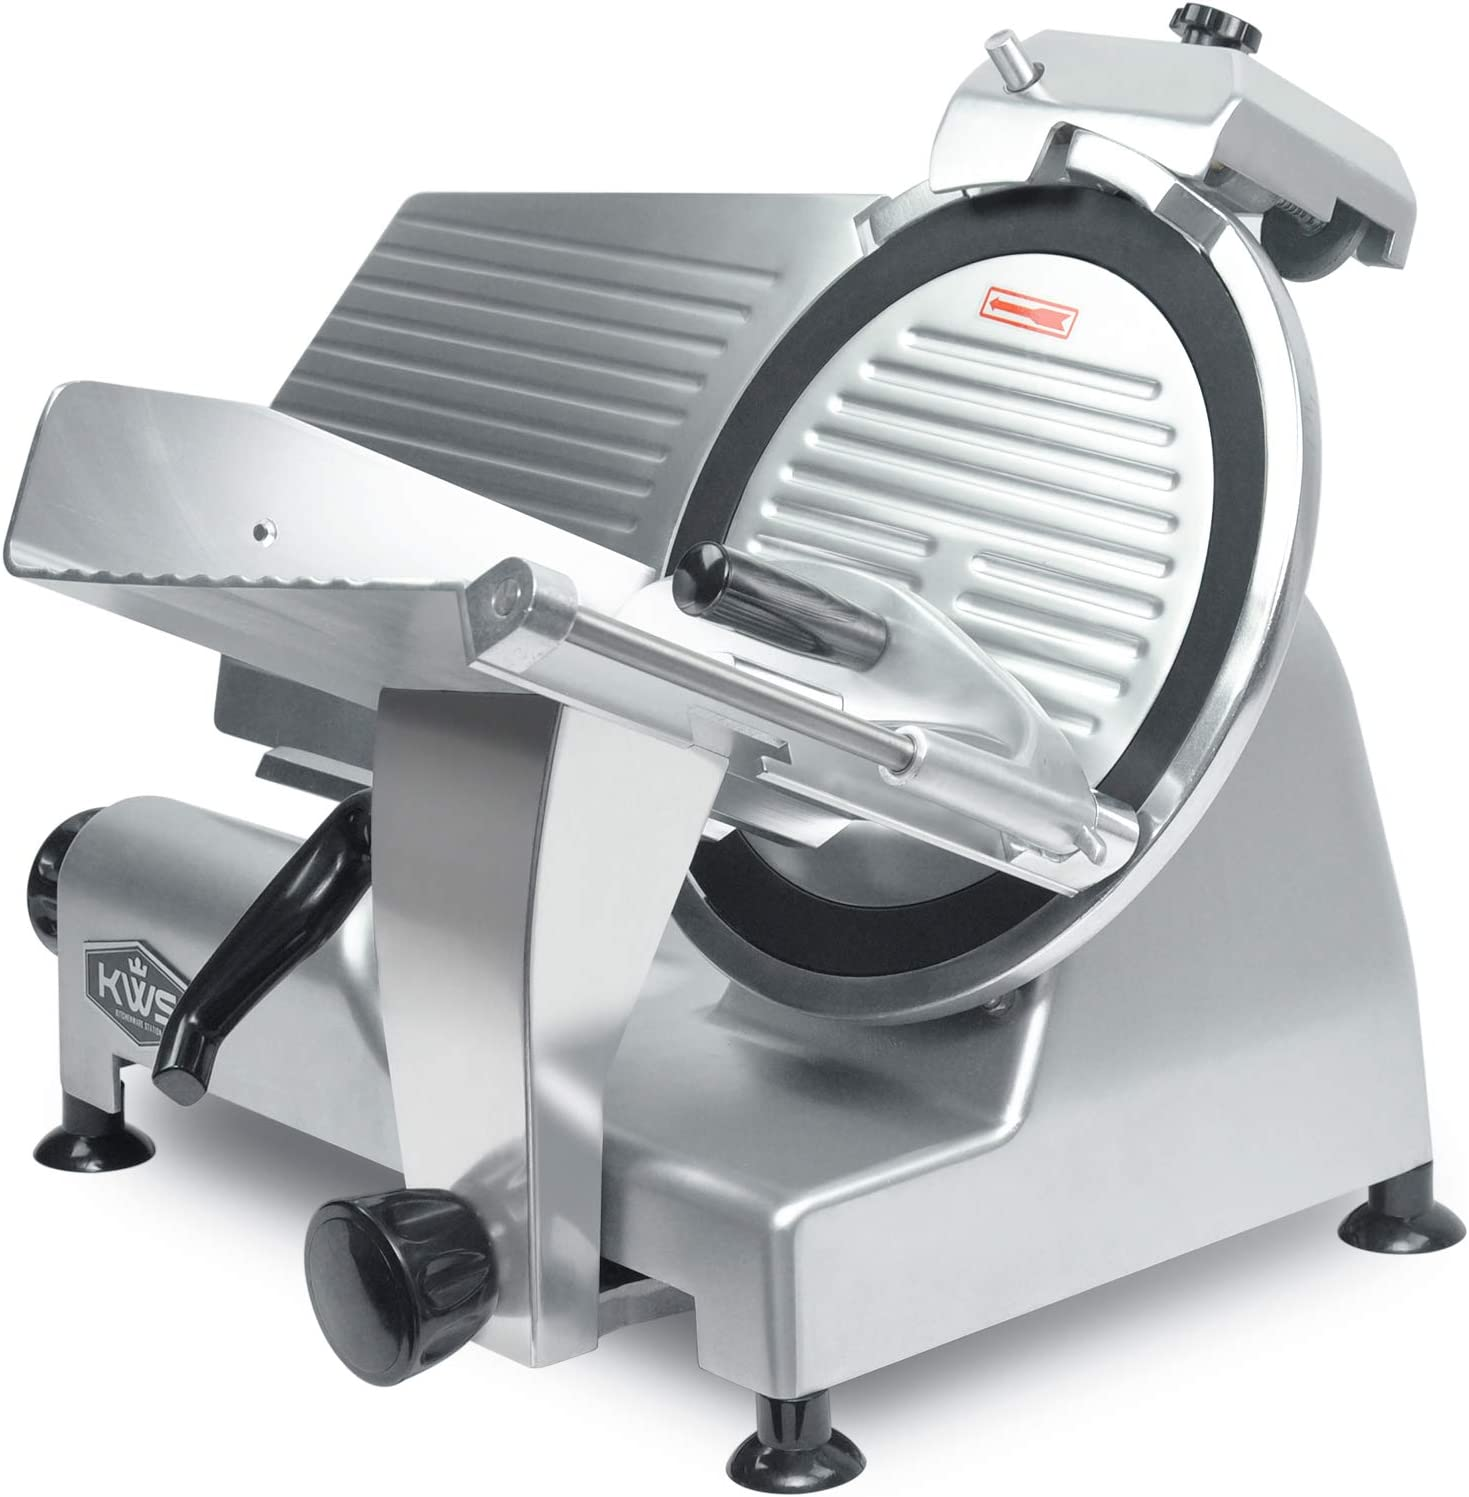 KWS MS-12NT Premium Commercial 420w Beauty products Slicer Electric 12-Inch Meat Arlington Mall